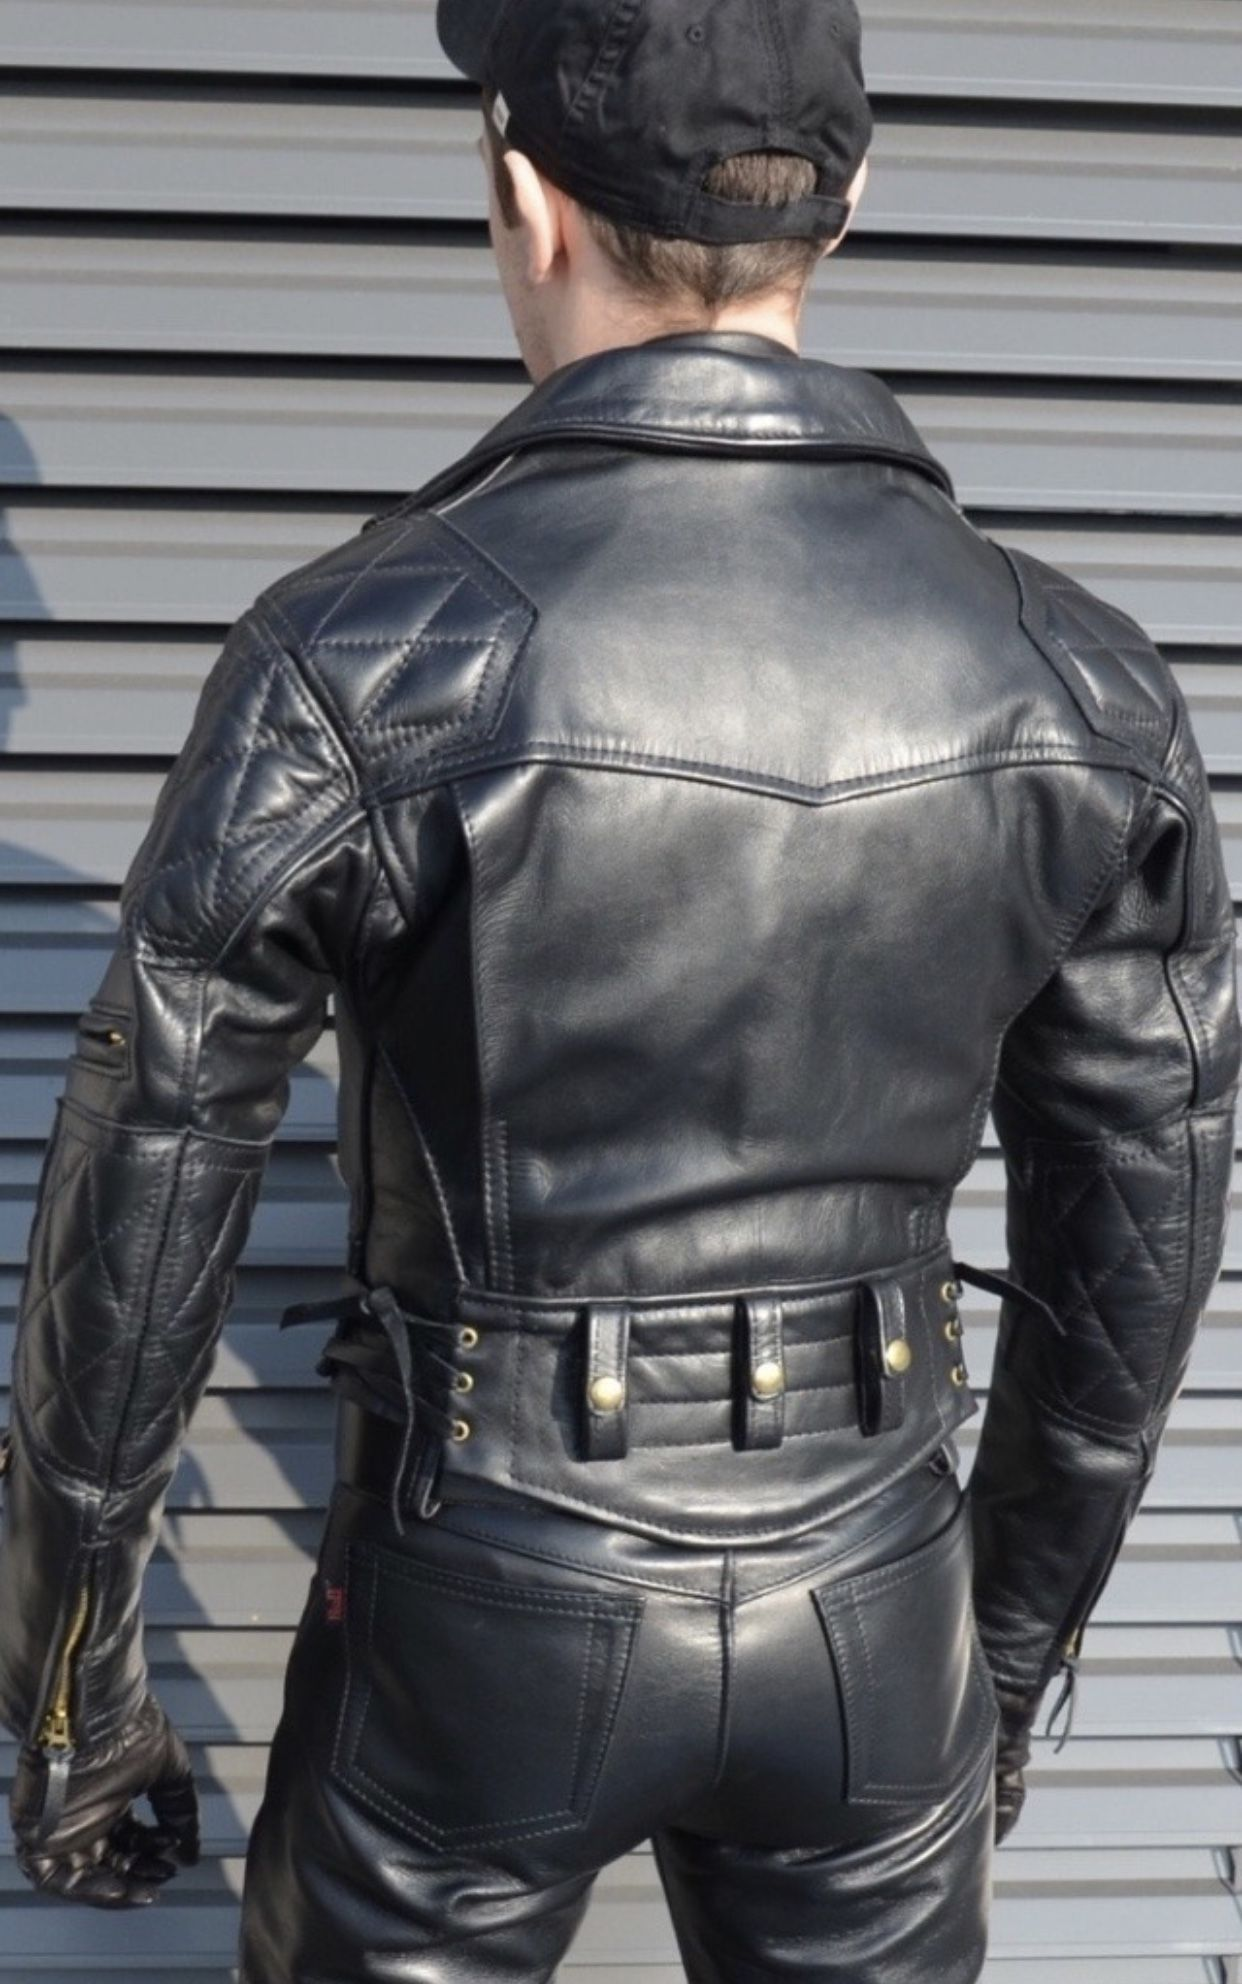 Pin By Andreasmolter On Men In Leather And Rubber Leather Jacket Men Tight Leather Pants Leather Jacket [ 1984 x 1242 Pixel ]